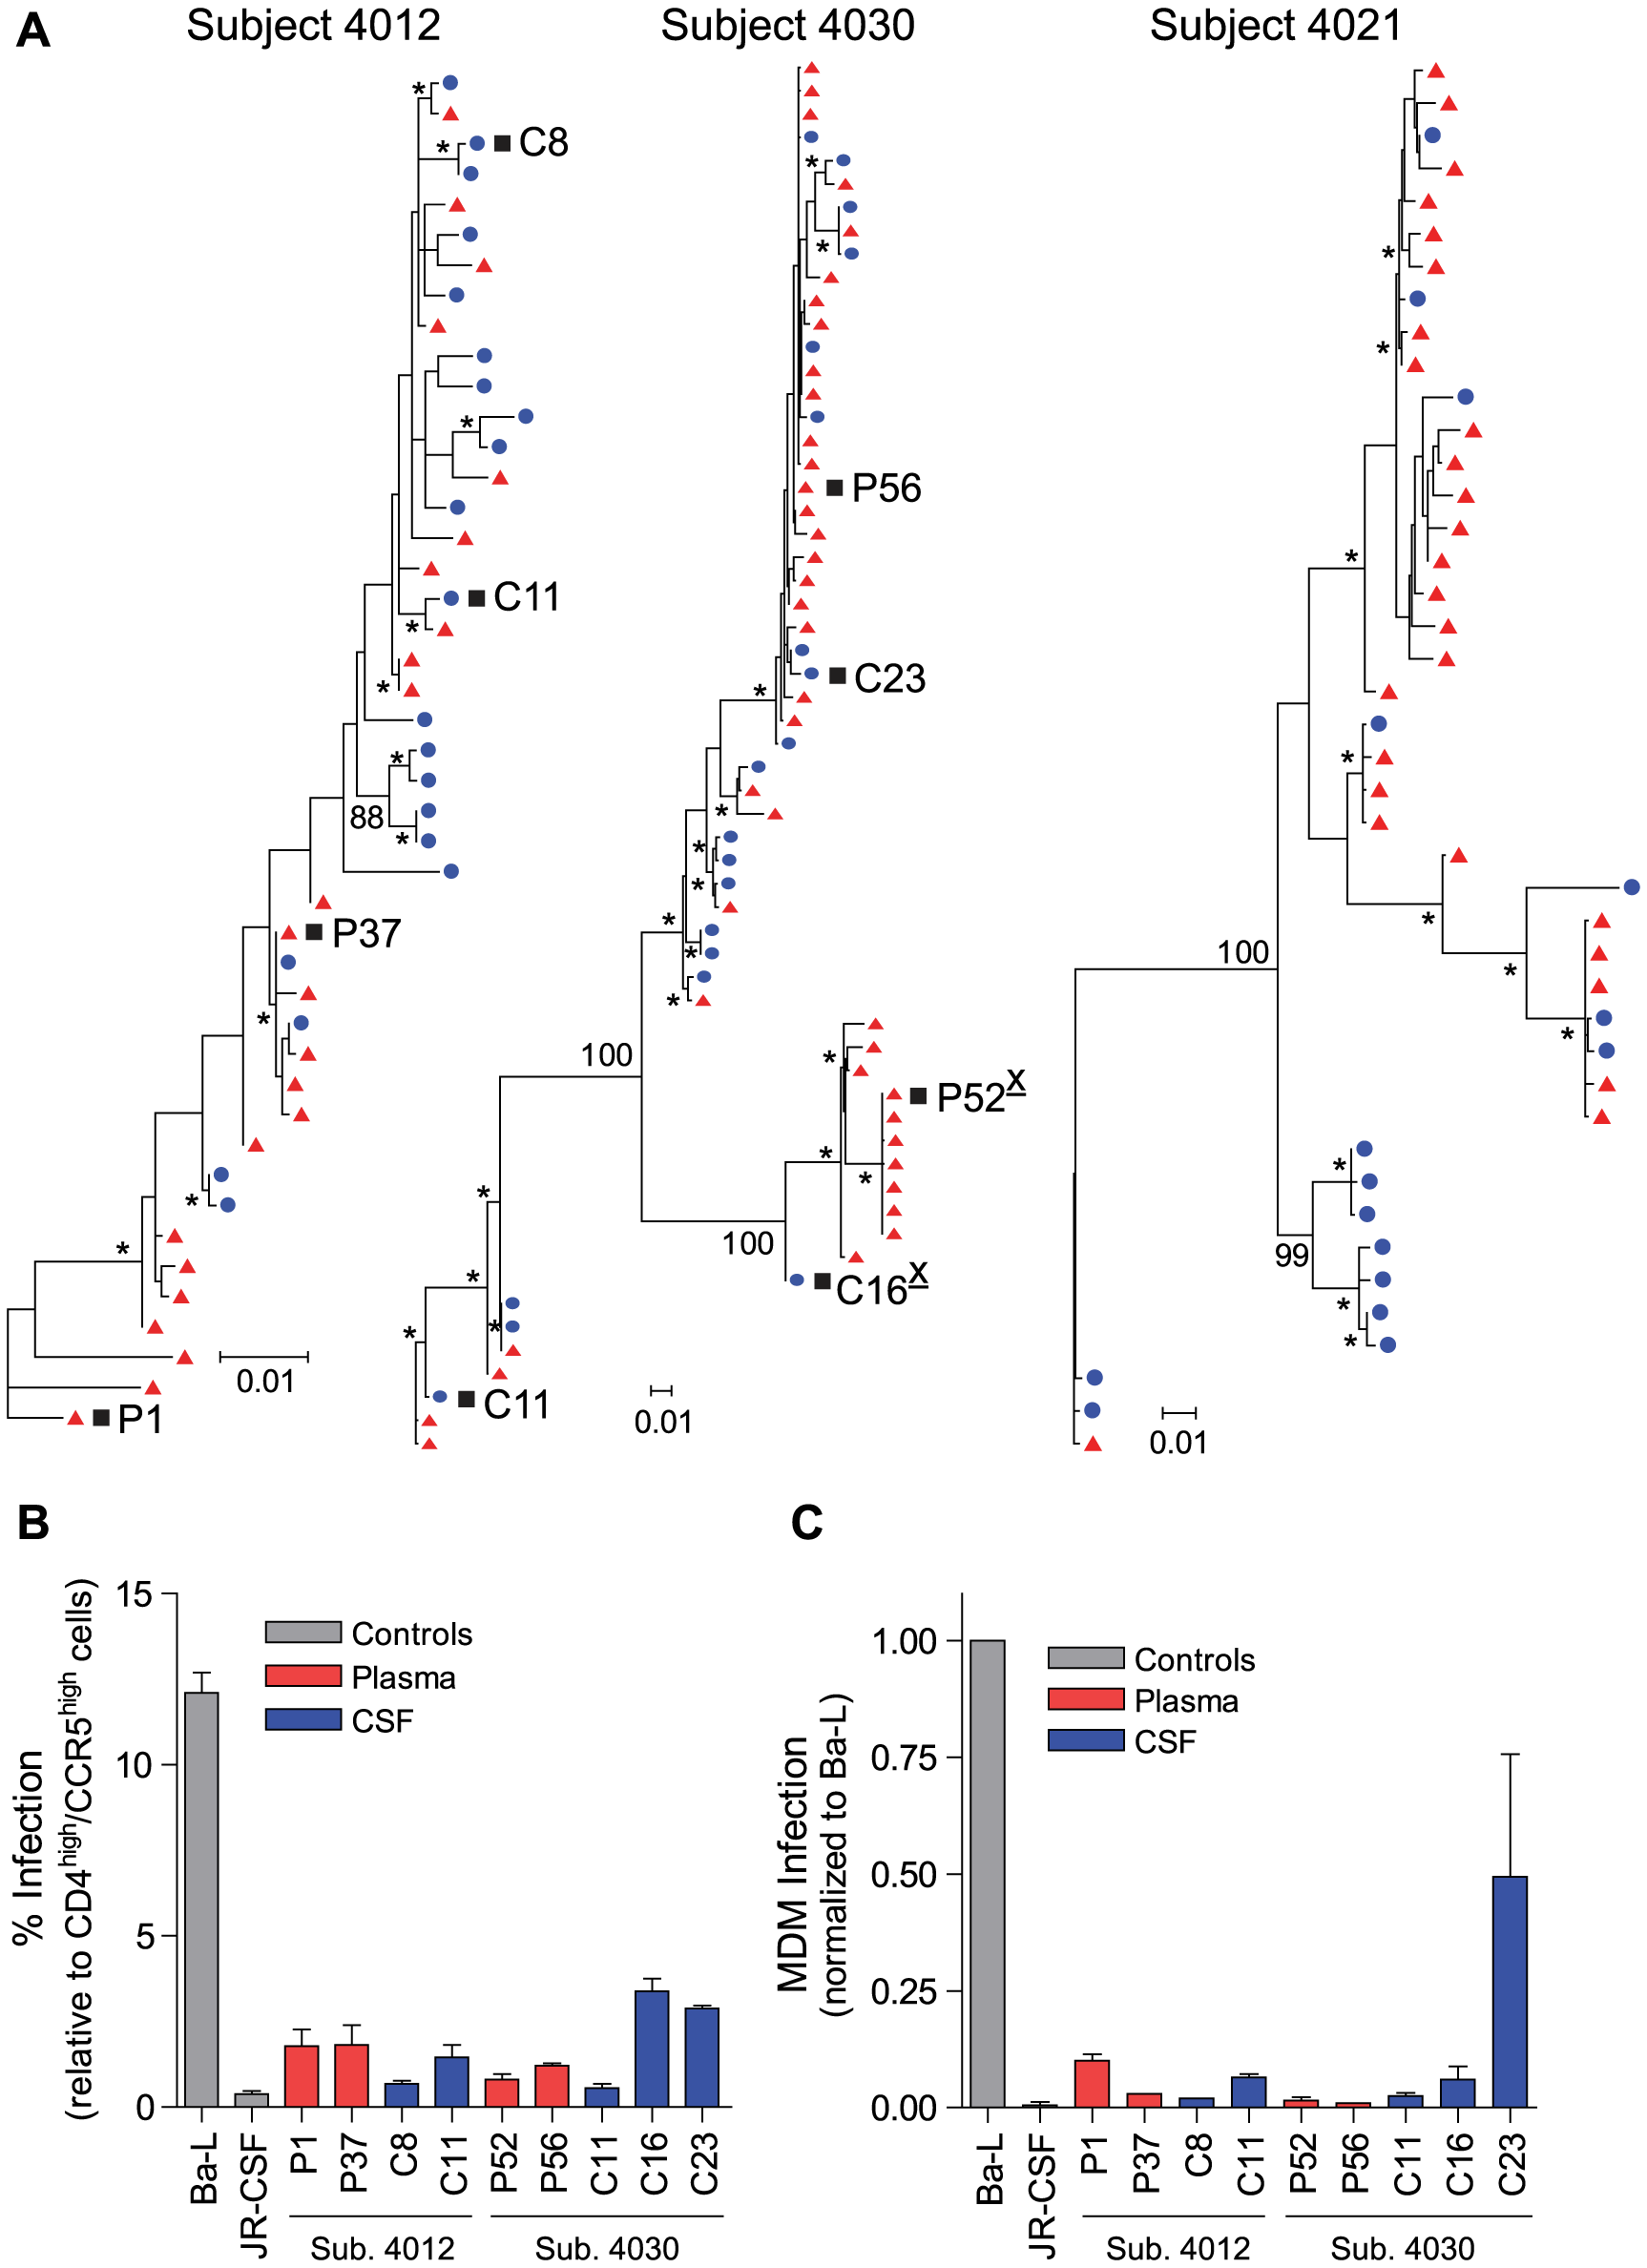 HIV-1 variants in the CSF of neurologically asymptomatic subjects can be R5 T cell-tropic.